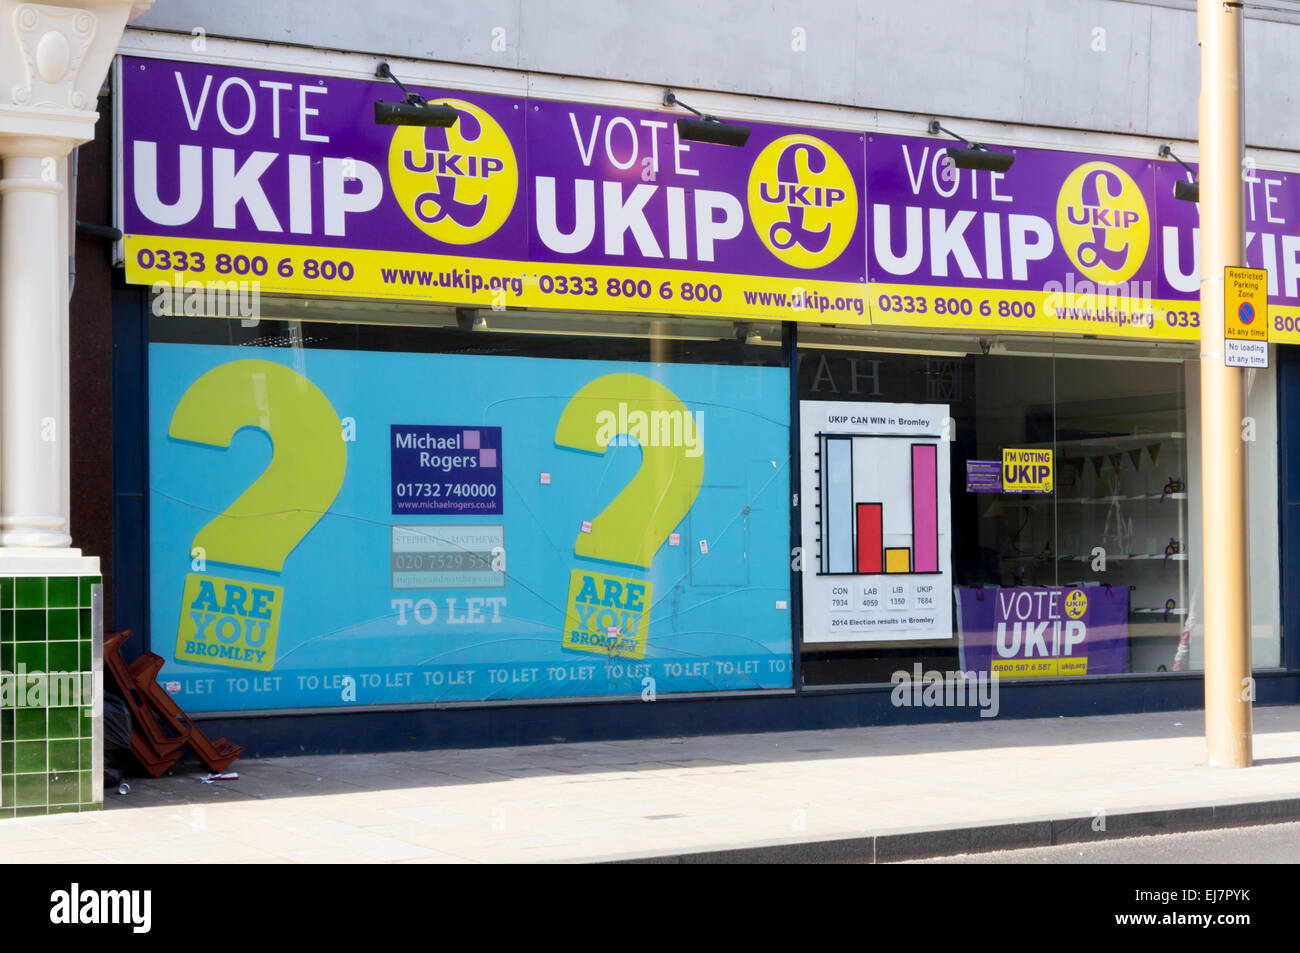 UKIP campaign office in Bromley, South London for General Election 2015. - Stock Image